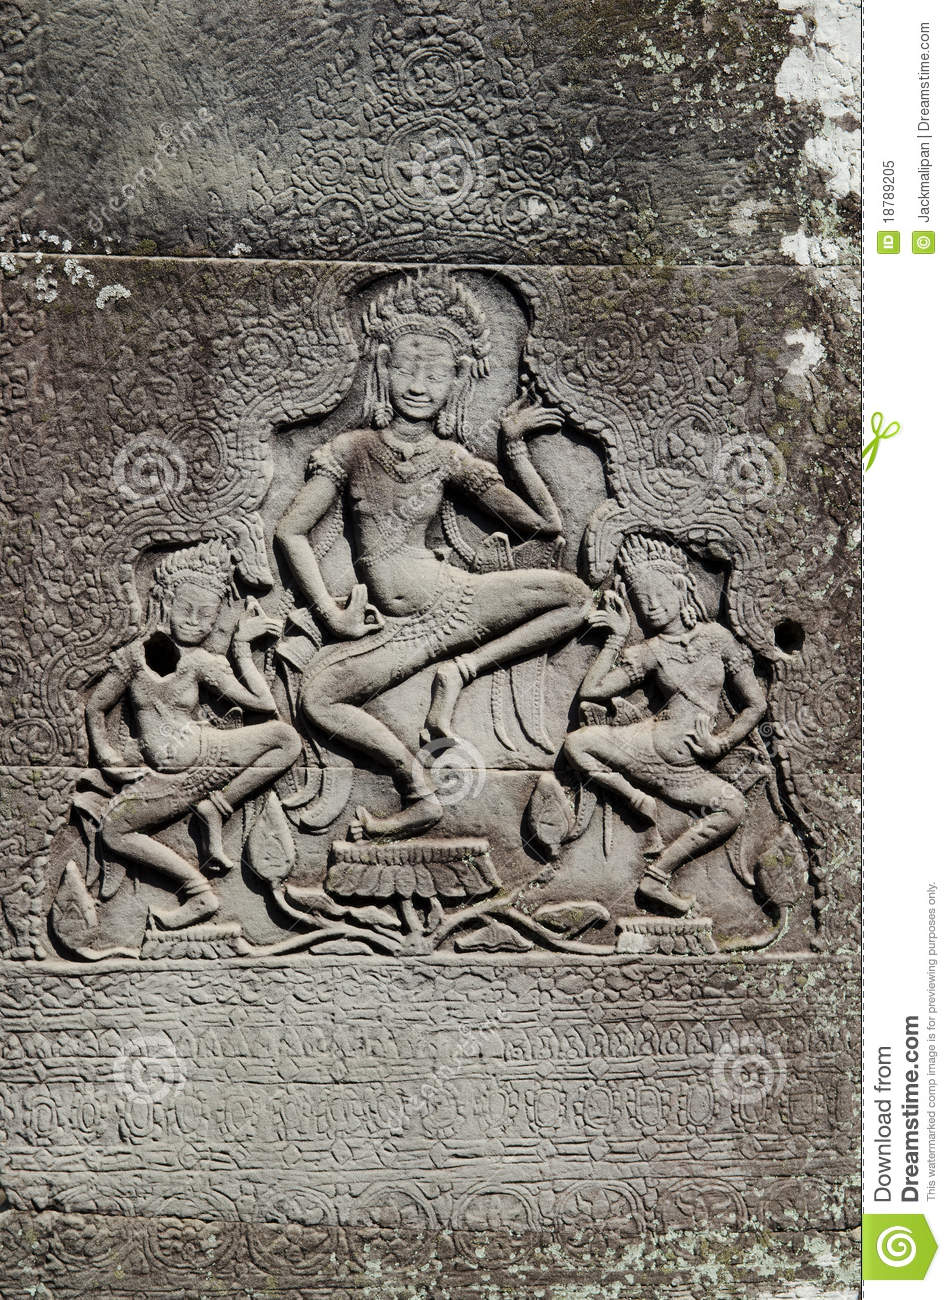 Khmer stone carvings angkor wat cambodia royalty free